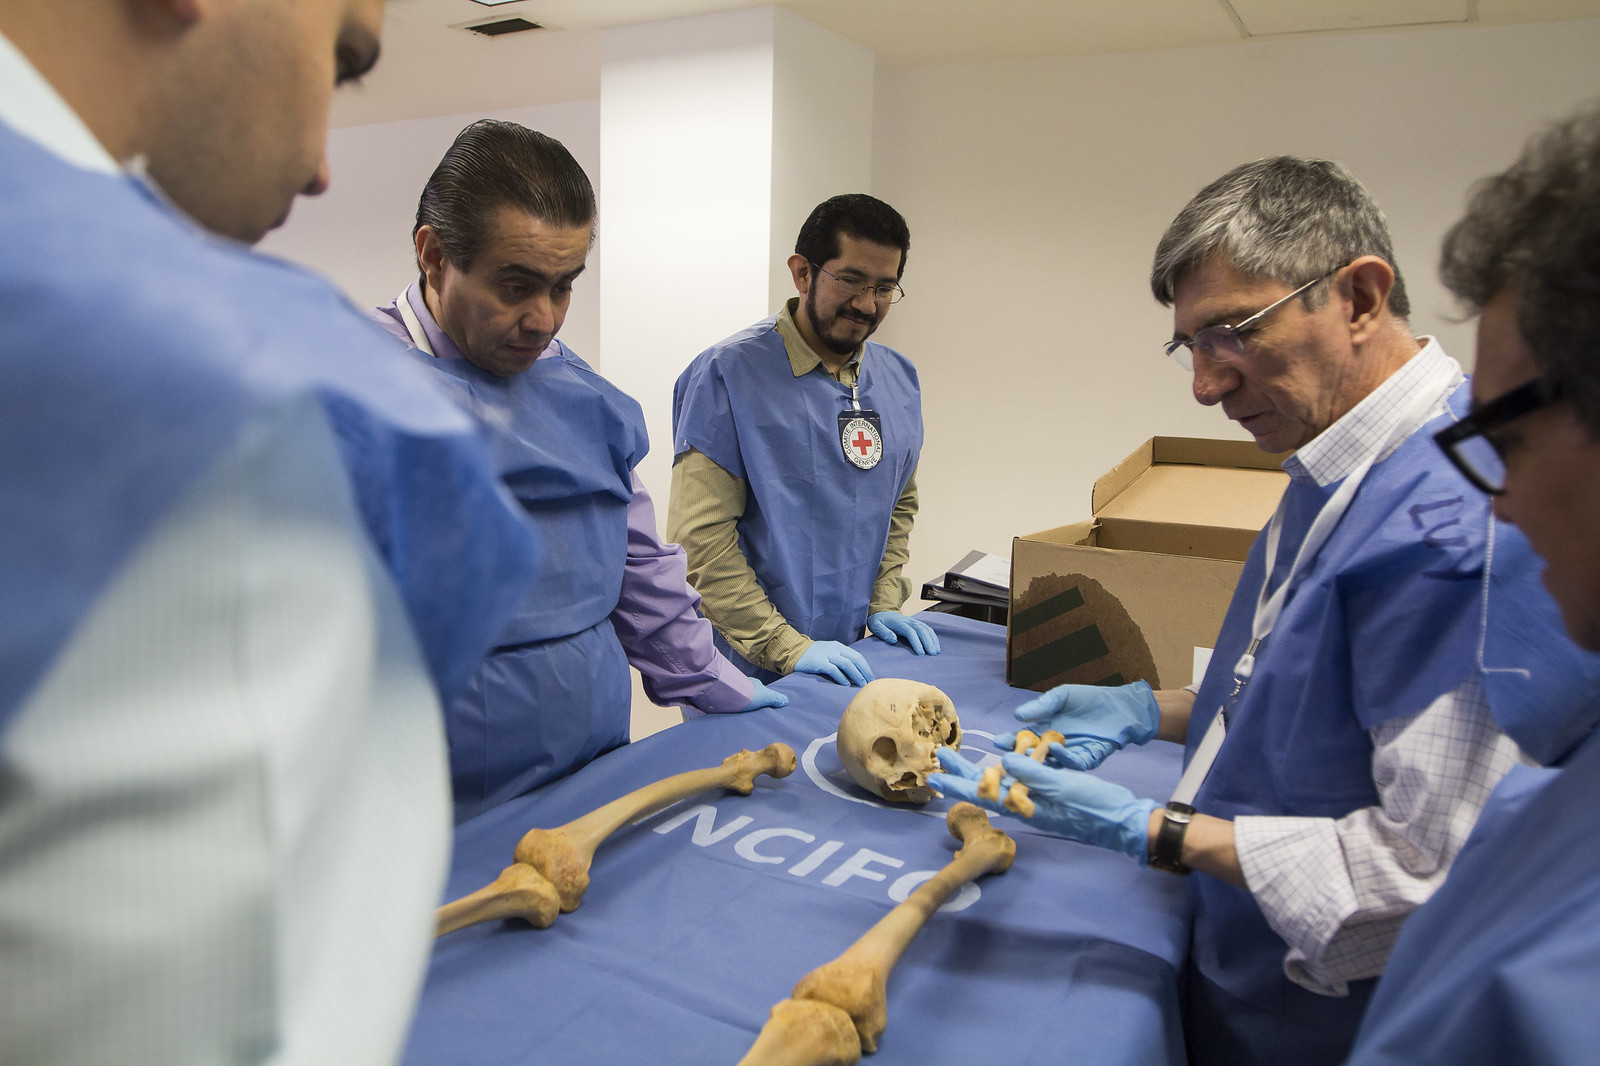 Forensic anthropologists working with the ICRC to examine a human skeleton laid out on a lab table